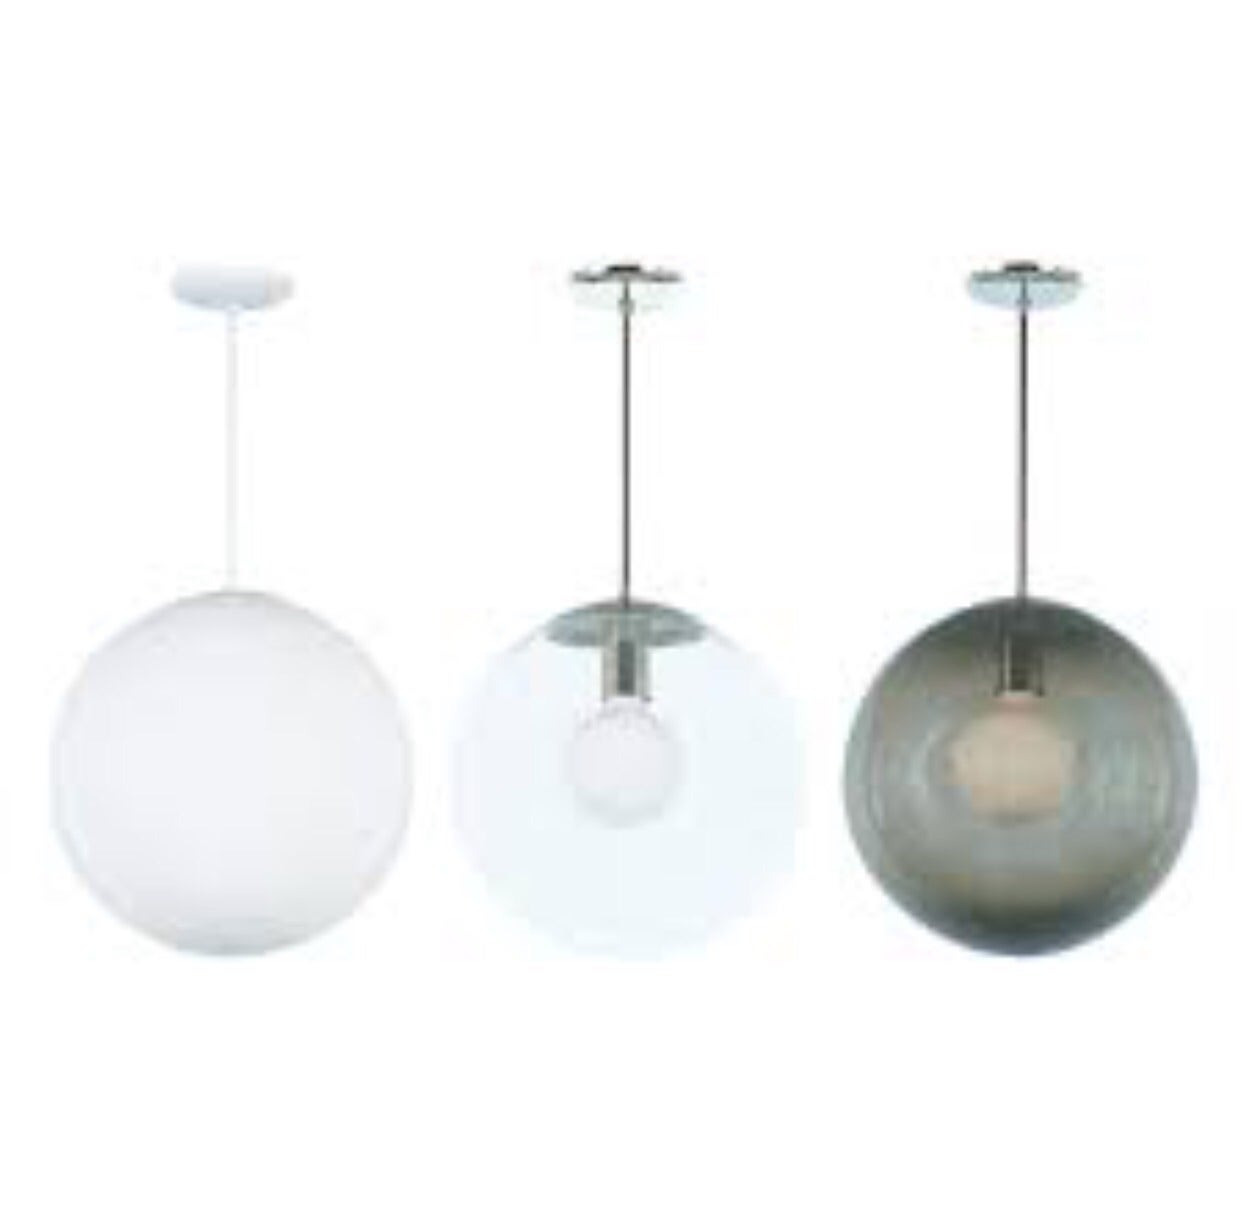 Vintage Style Glass Globe Hanging Pendant Light Fixture For Sale at ...